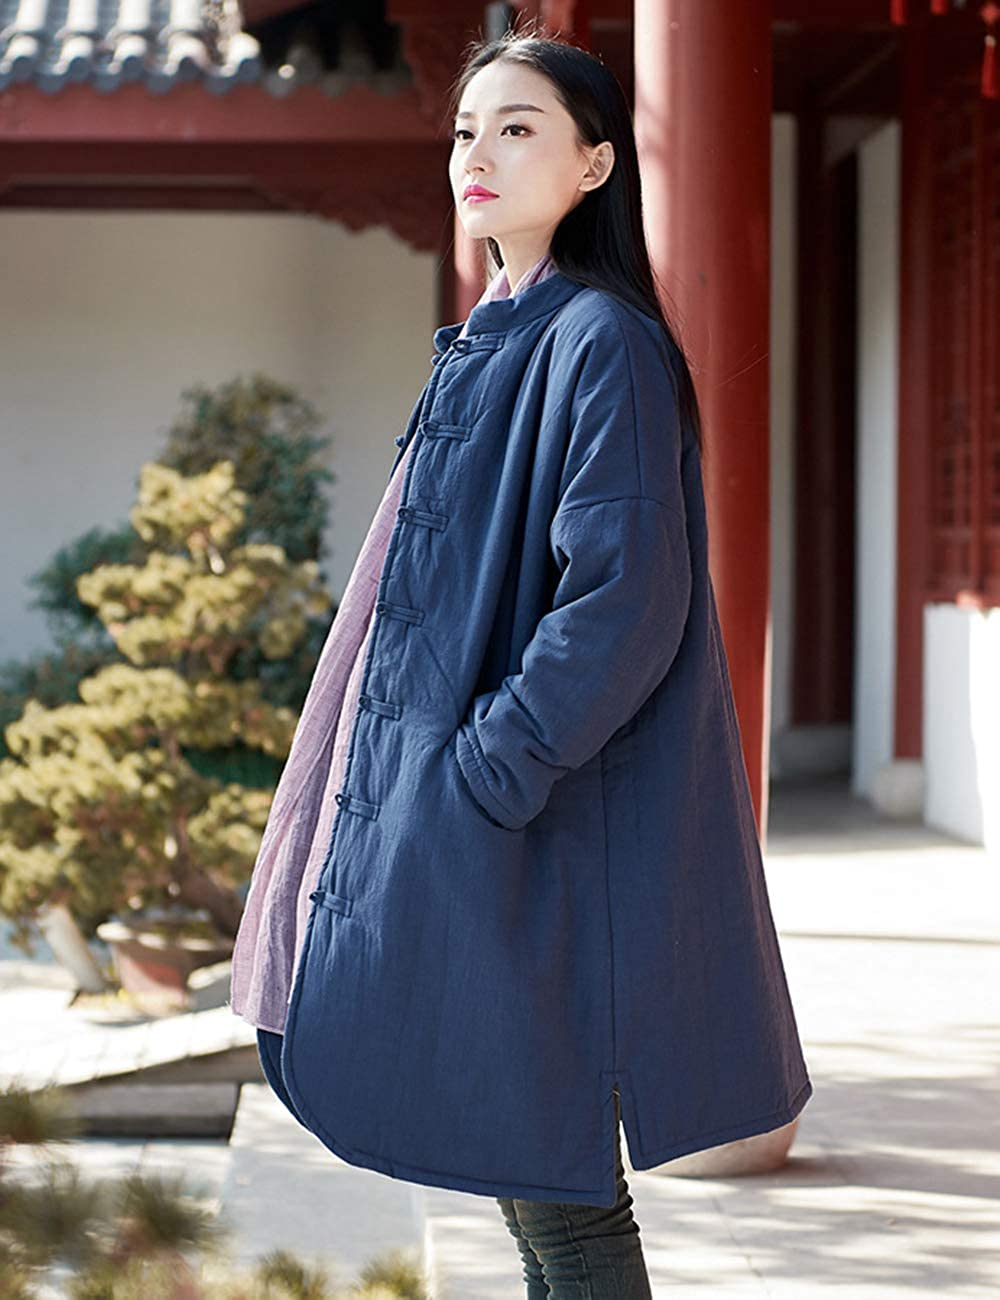 LZJN Women's Cotton Padded Coats Mid-Length Quilted Chinese Style Winter Jackets 2306 Navy